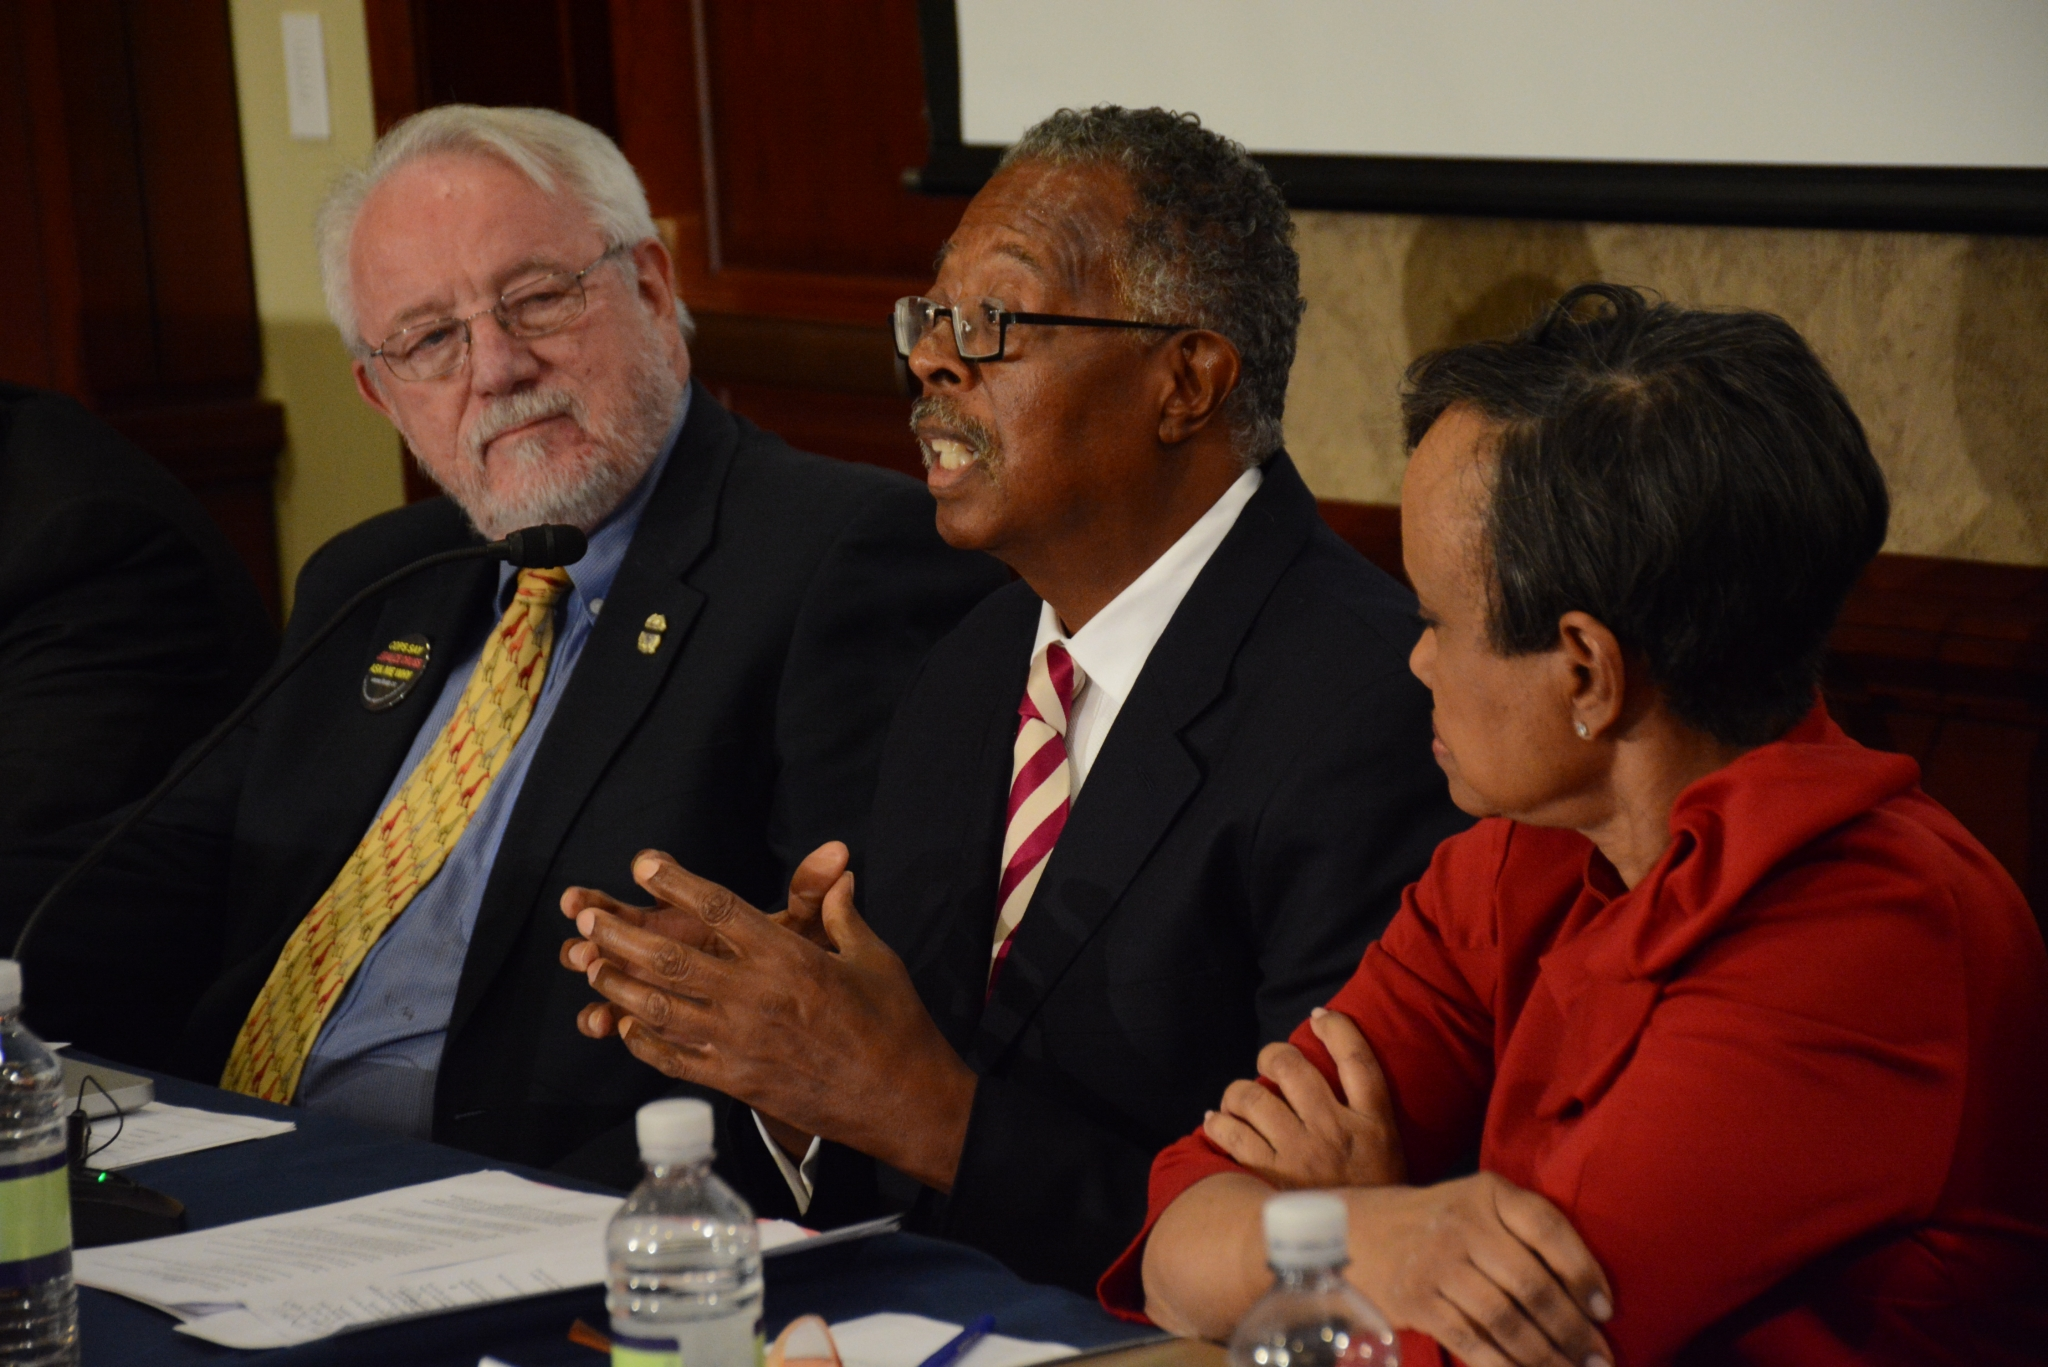 Dr. George W. Woods, Jr. speaks on the Gun Violence and Trauma Congressional Briefing panel held Monday, Nov. 1 in Northwest with Jack Cole (left), co-founder of Law Enforcement Against Prohibition, and Judge Glenda Hatchet. /Photo by Roy Lewis